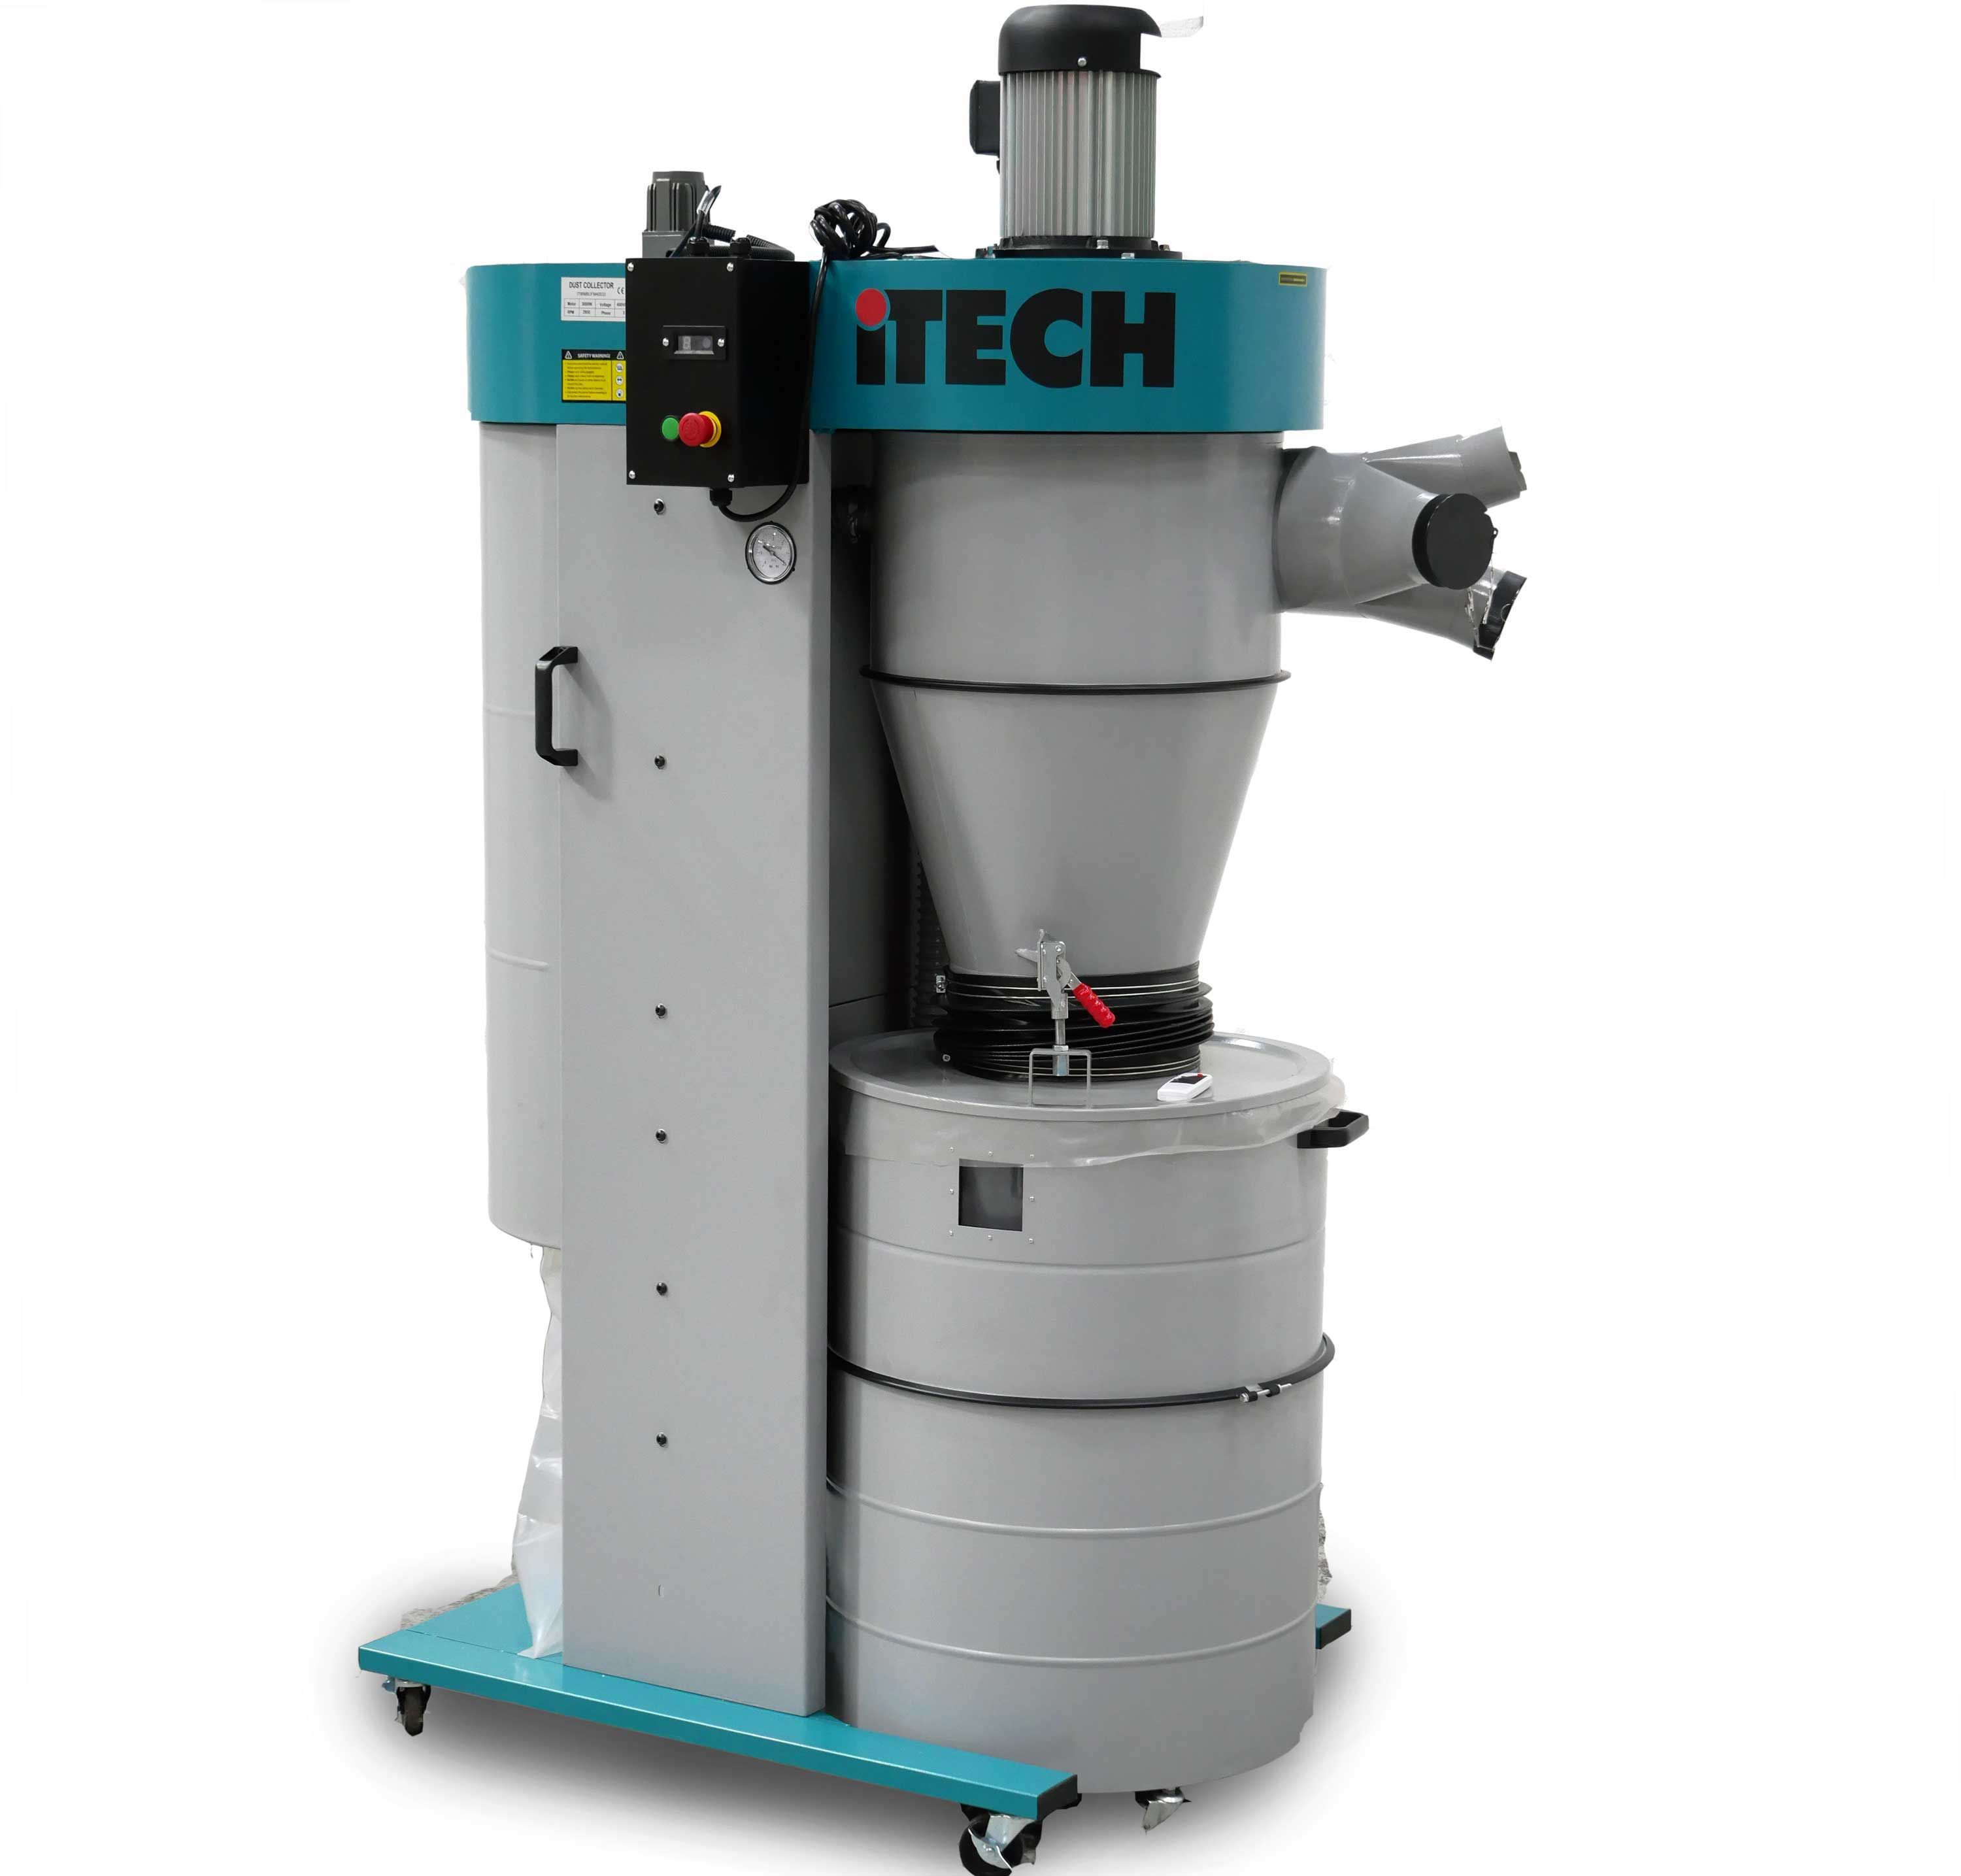 iTECH FM4002200 Cyclone Fine Dust Extractor 1 ph Dust